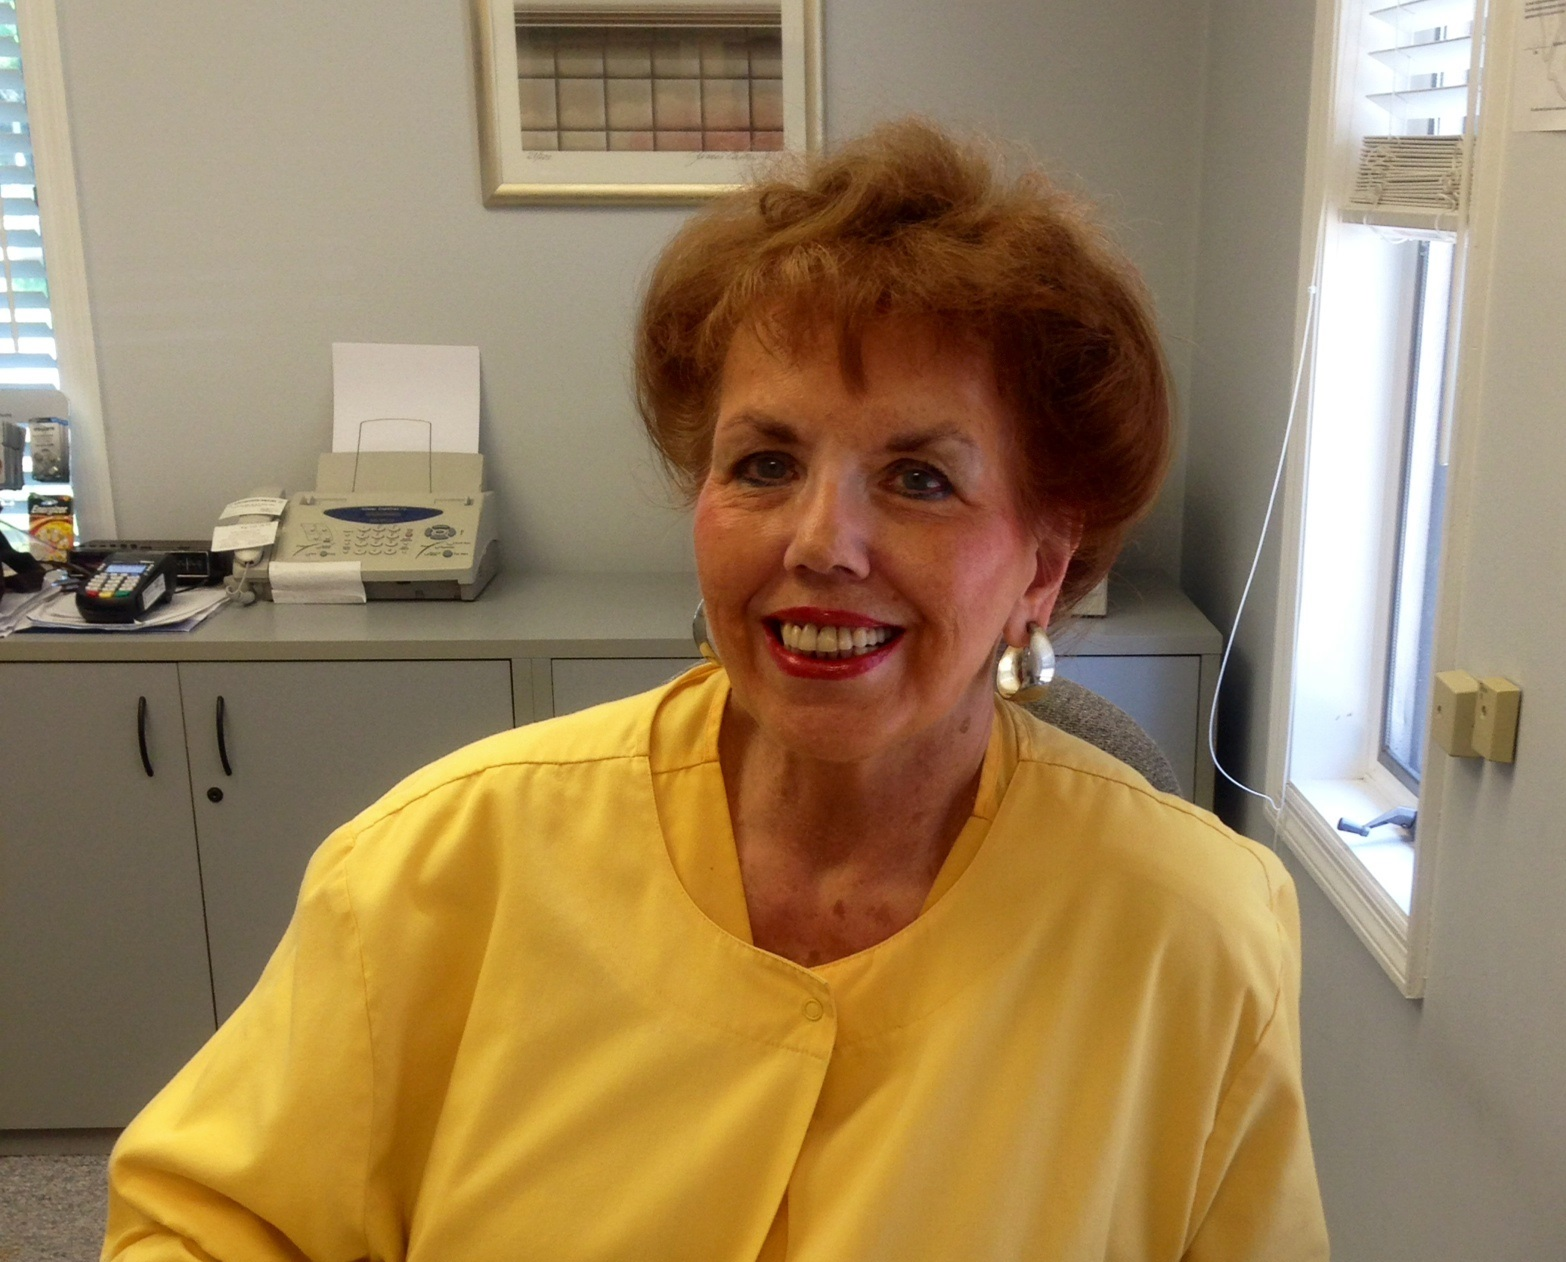 Val Henningsen has been an intricate part of The Hearing Center since 2004 as Office Manager, Administrative Assistant and Patient Coordinator. She completed a course of study at Lyons Institute of Medical Technology, Union College and Alpha Train computer school. Val has many years experience in physicians' private practice, National Health Laboratories, Assisted Living, the Nursing Home environment and Muhlenberg Regional Medical Center's Medical Education. Her compassion and empathy are always demonstrated in her interaction with patients.